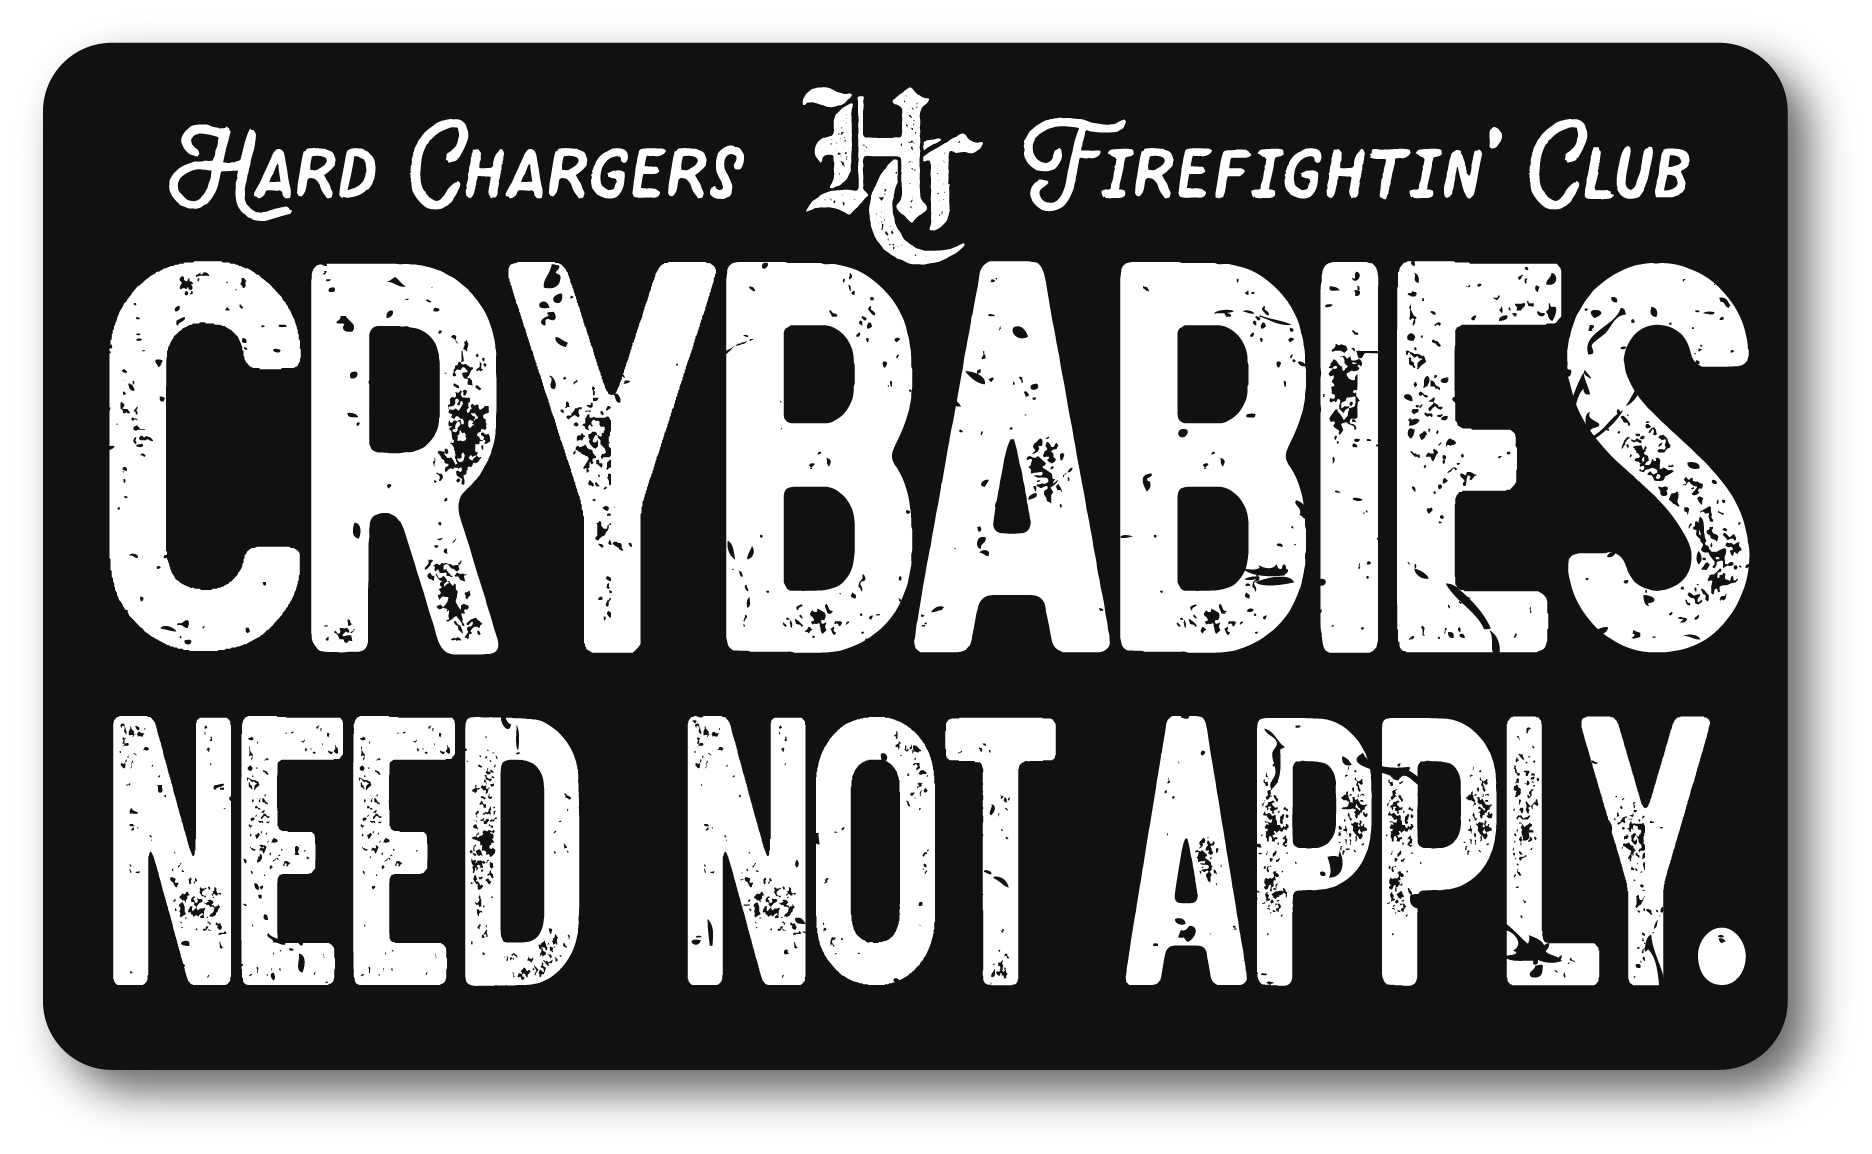 H.C. Crybabies Decal